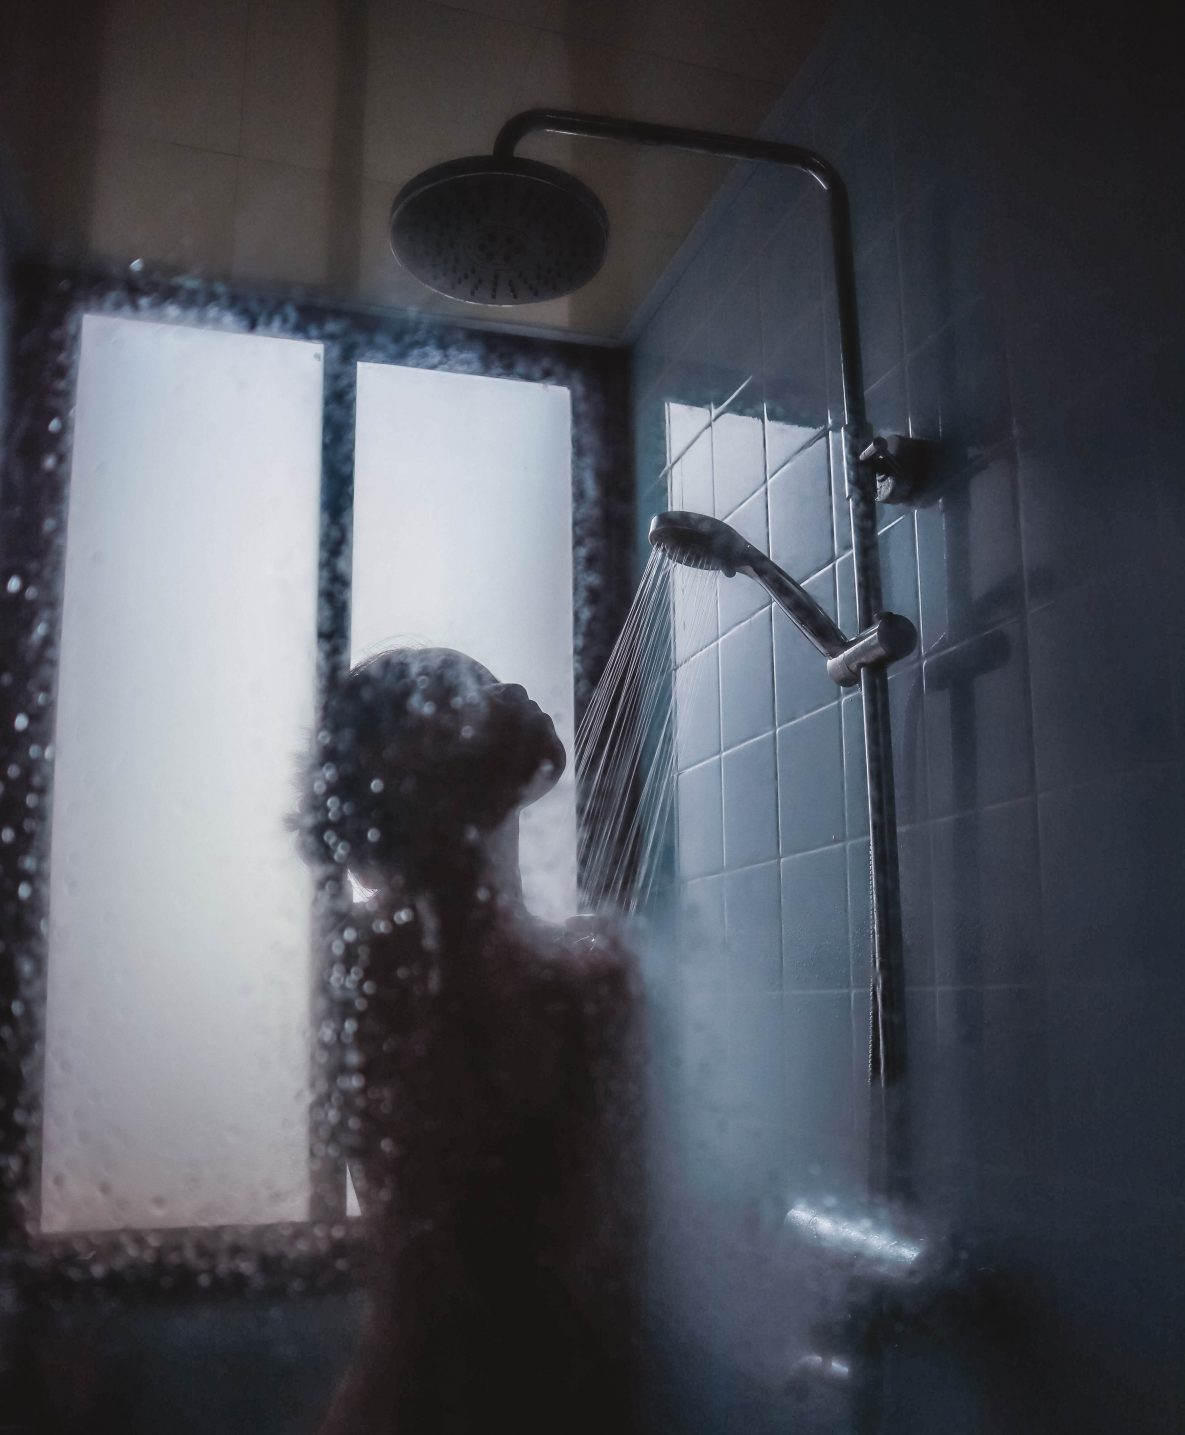 Naked girl taking a shower